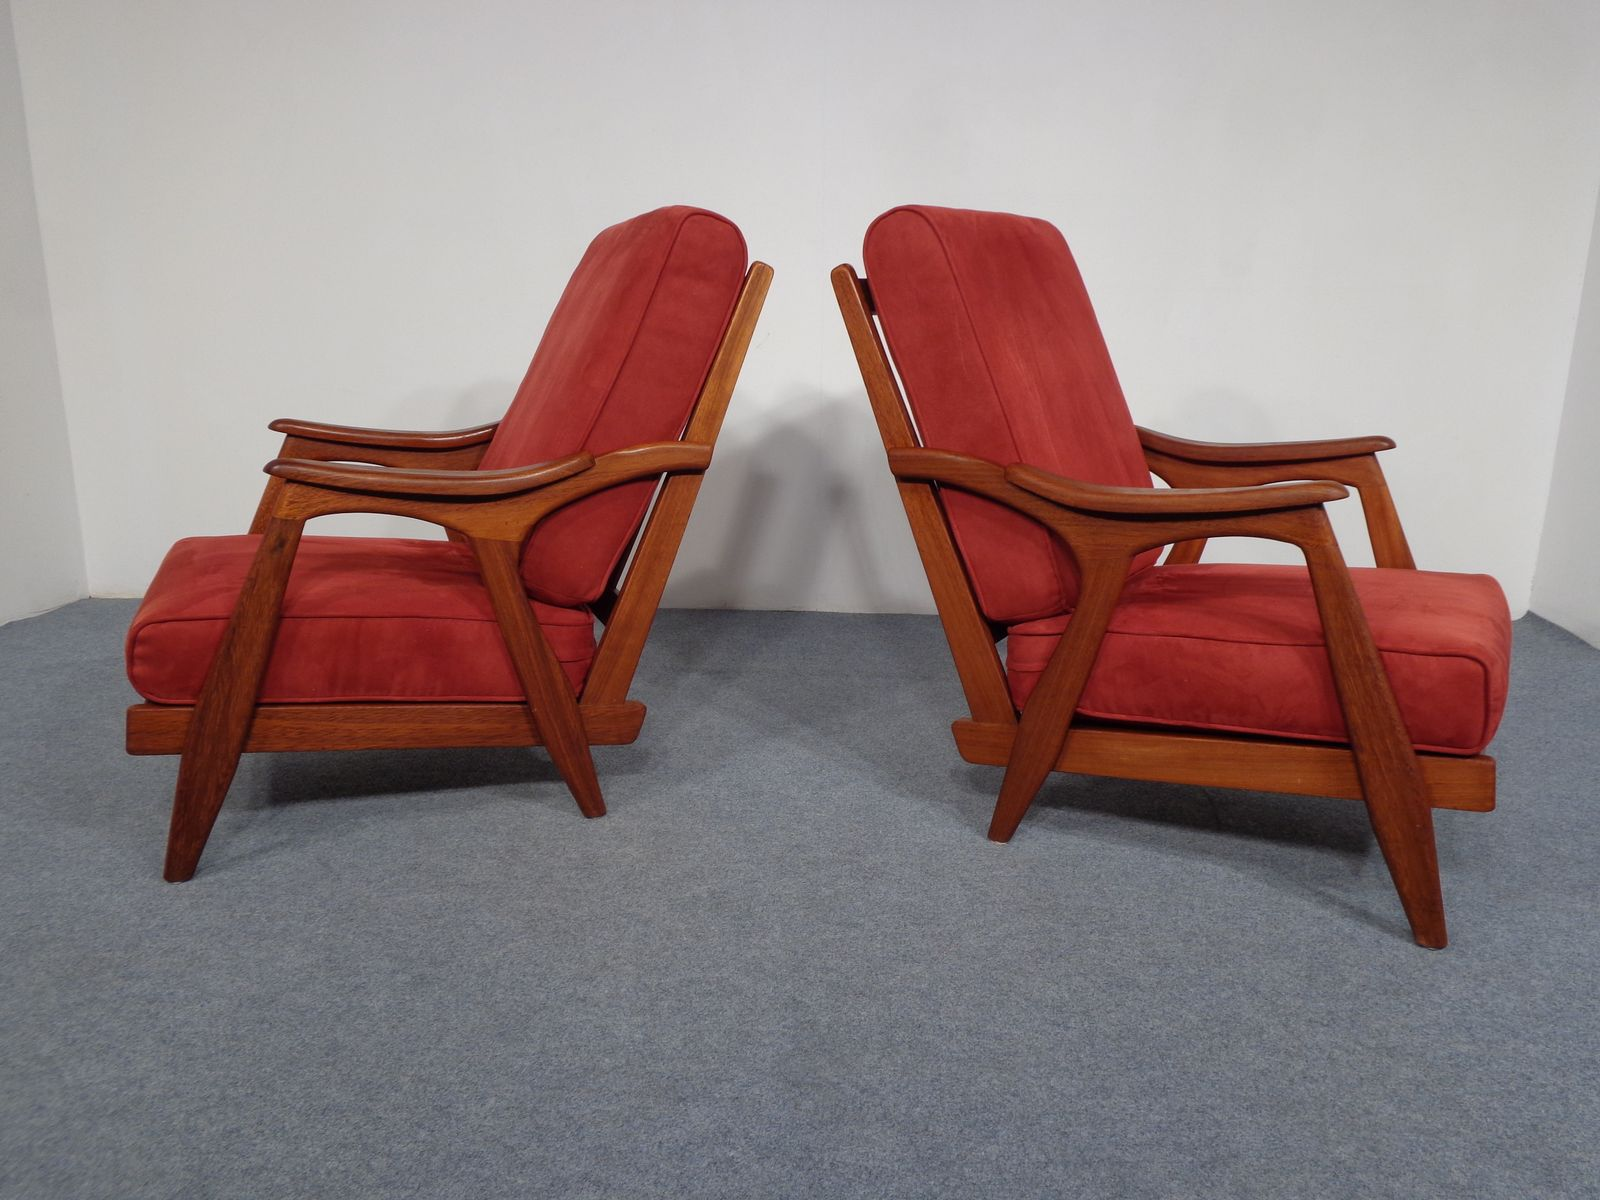 teak chaise lounge chairs sale chair pads for hardwood floors 1950s set of 2 at pamono